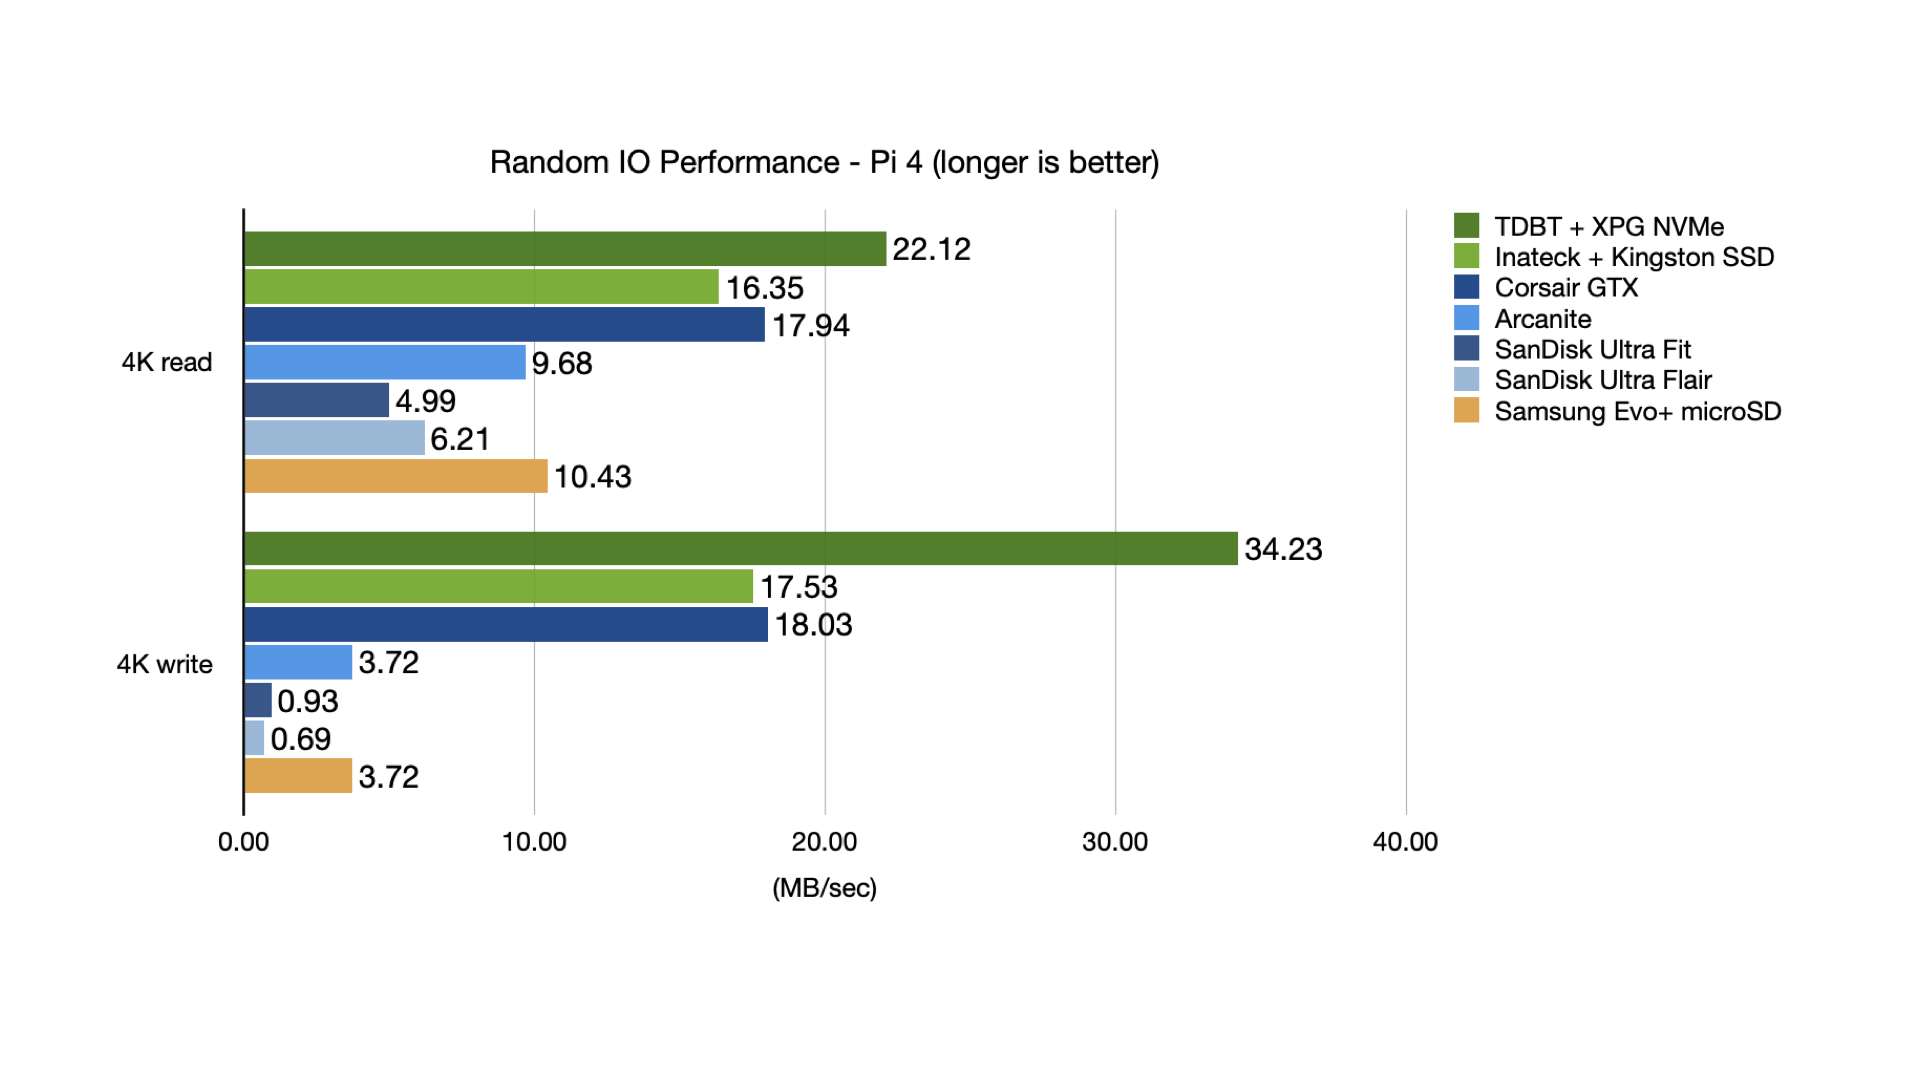 Random IO performance of different USB drives on Raspberry Pi